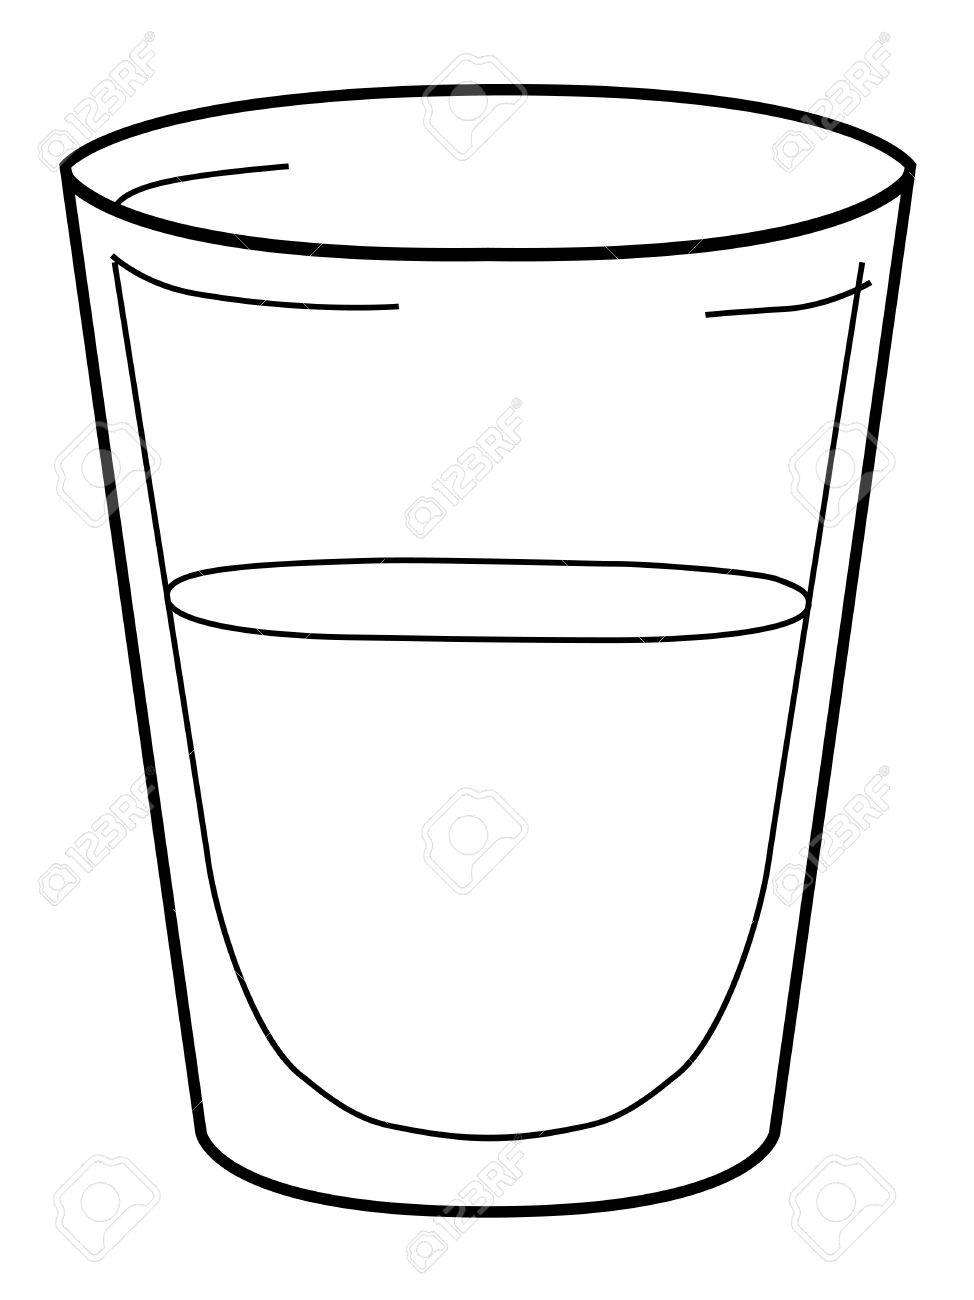 outline illustration of glass of water royalty free cliparts rh 123rf com glass of water clipart glass of iced water clipart